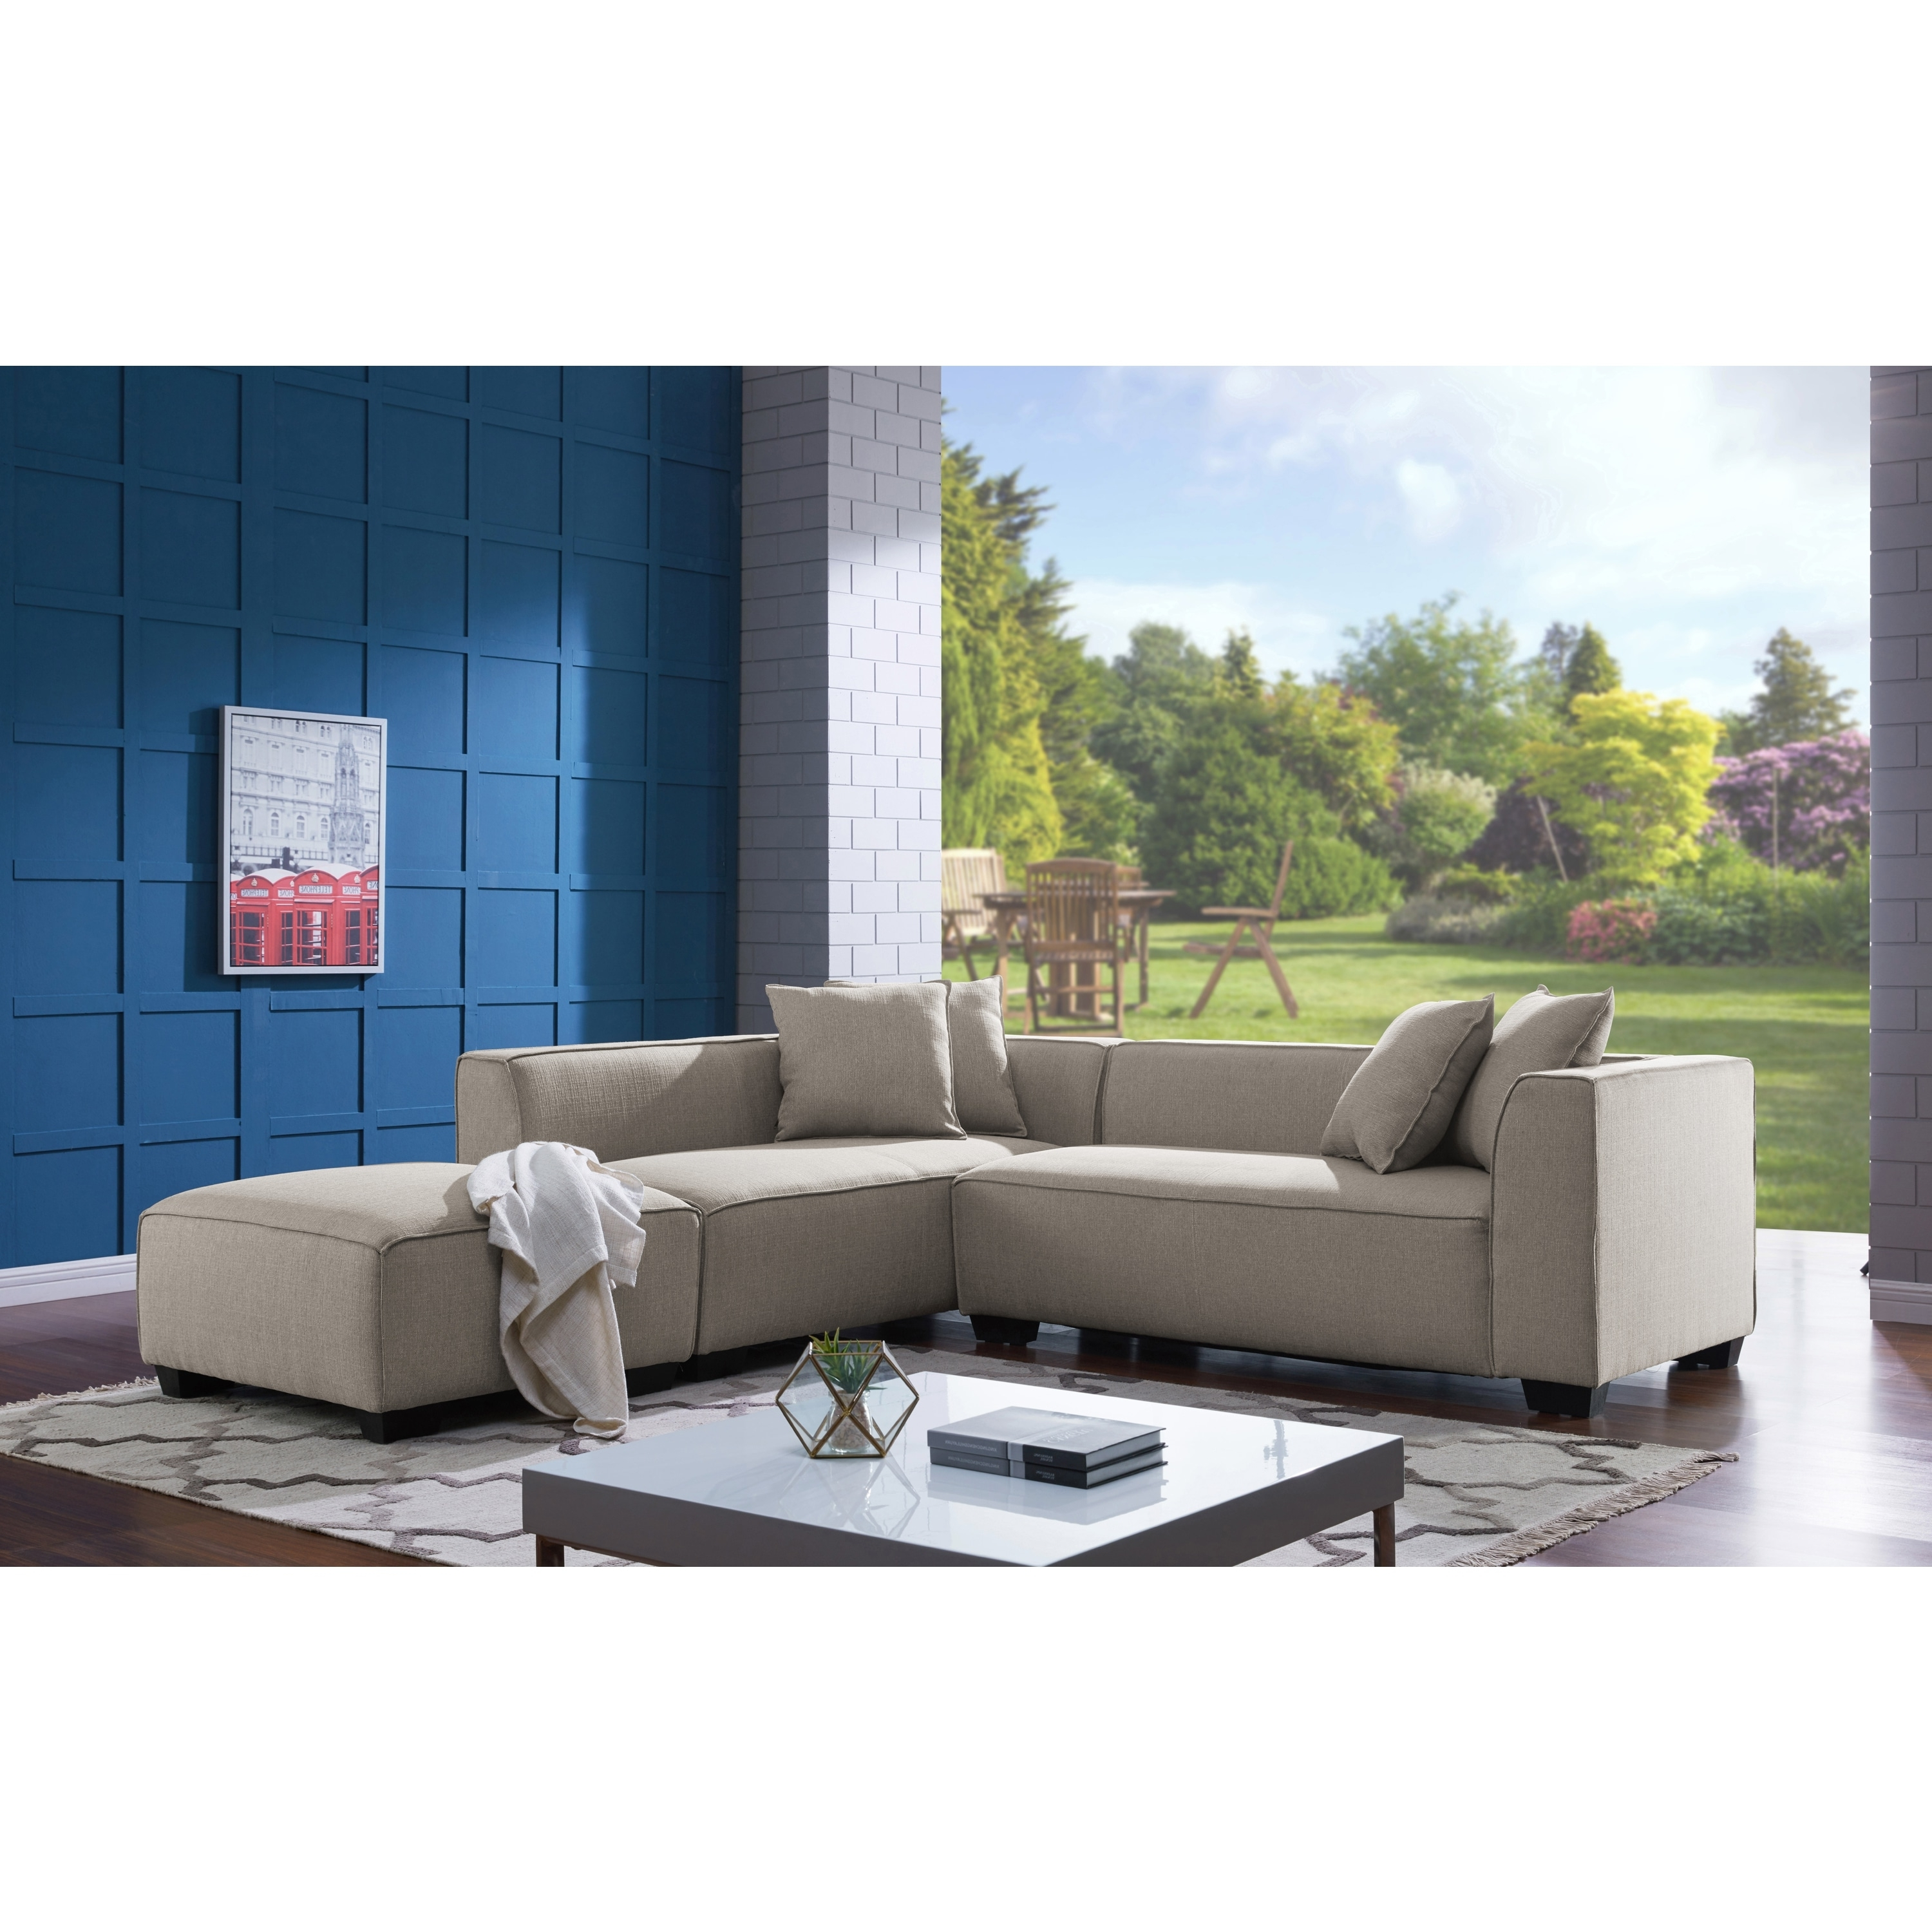 Favorite Handy Living Phoenix Barley Tan Sectional Sofa With Ottoman – Free Regarding Phoenix Sectional Sofas (View 6 of 20)